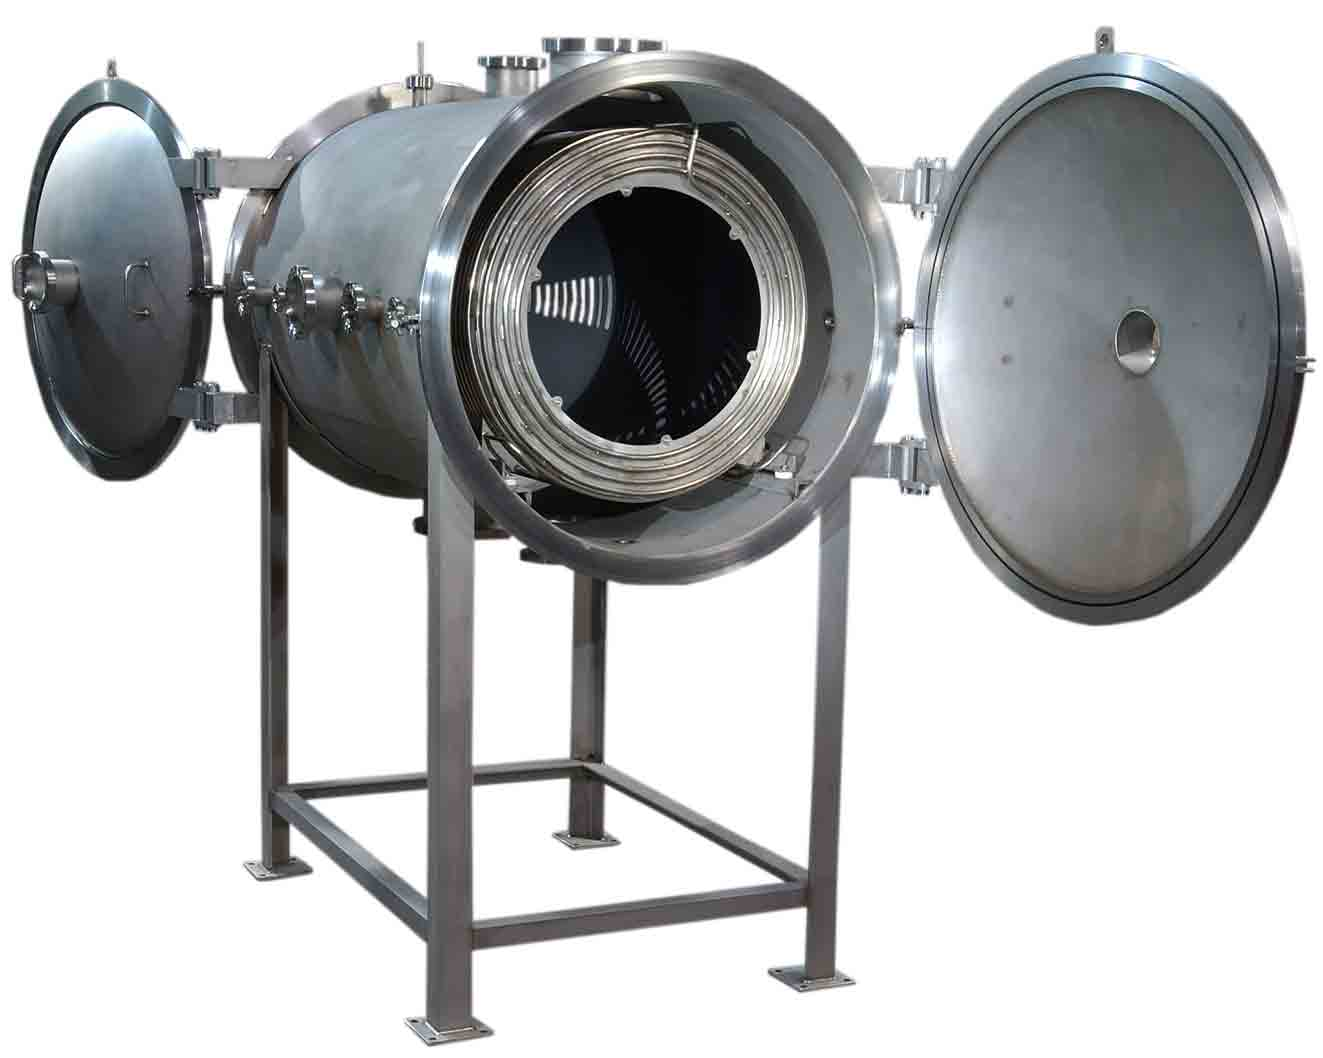 VTI's Thermal Processing Chamber with Internal Heat Exchanger